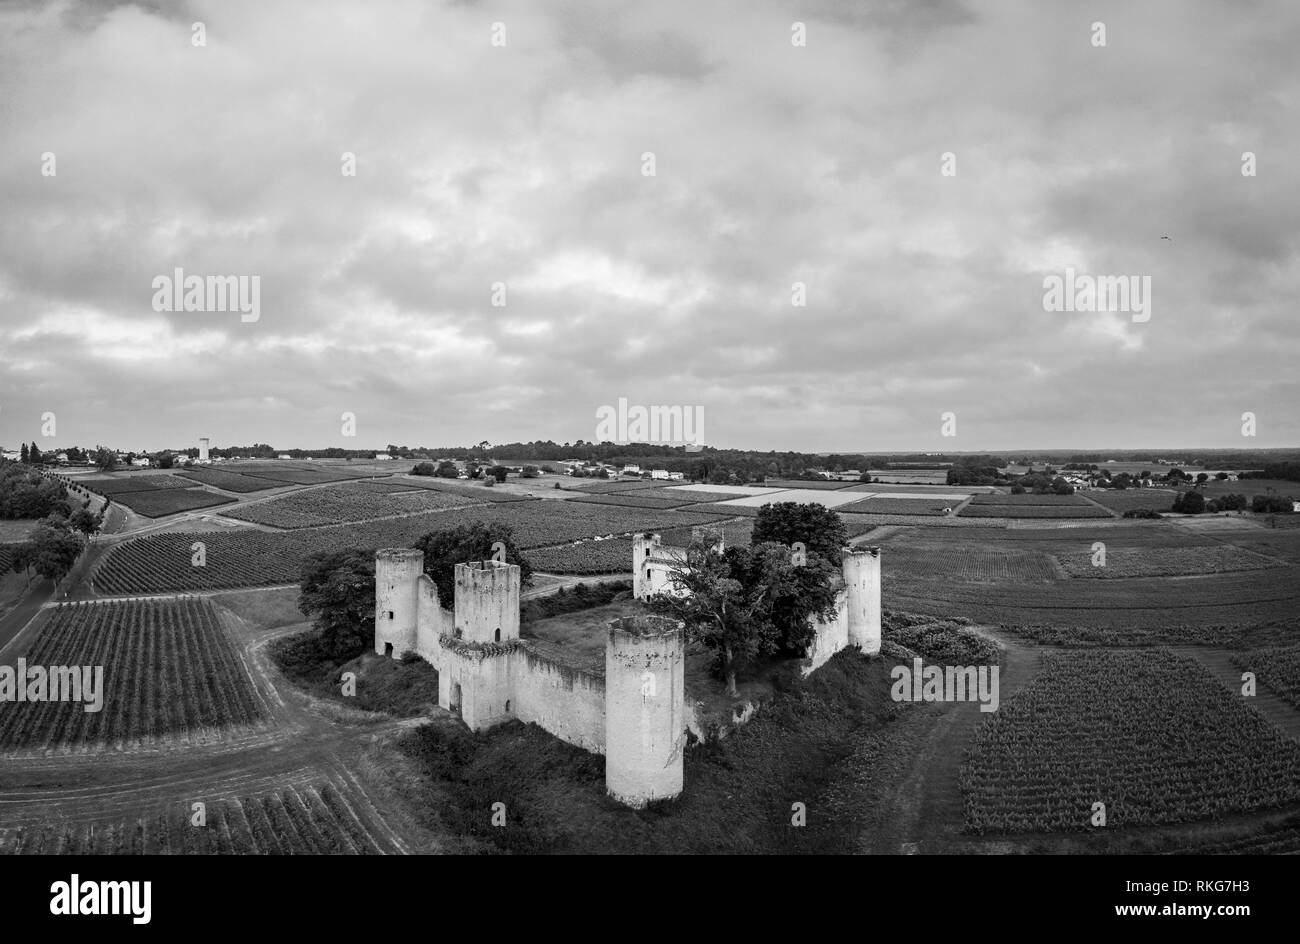 Aerial view Chateau de Budos and wheat field in summer , Bordeaux, Gironde, Aquitaine, France - Stock Image